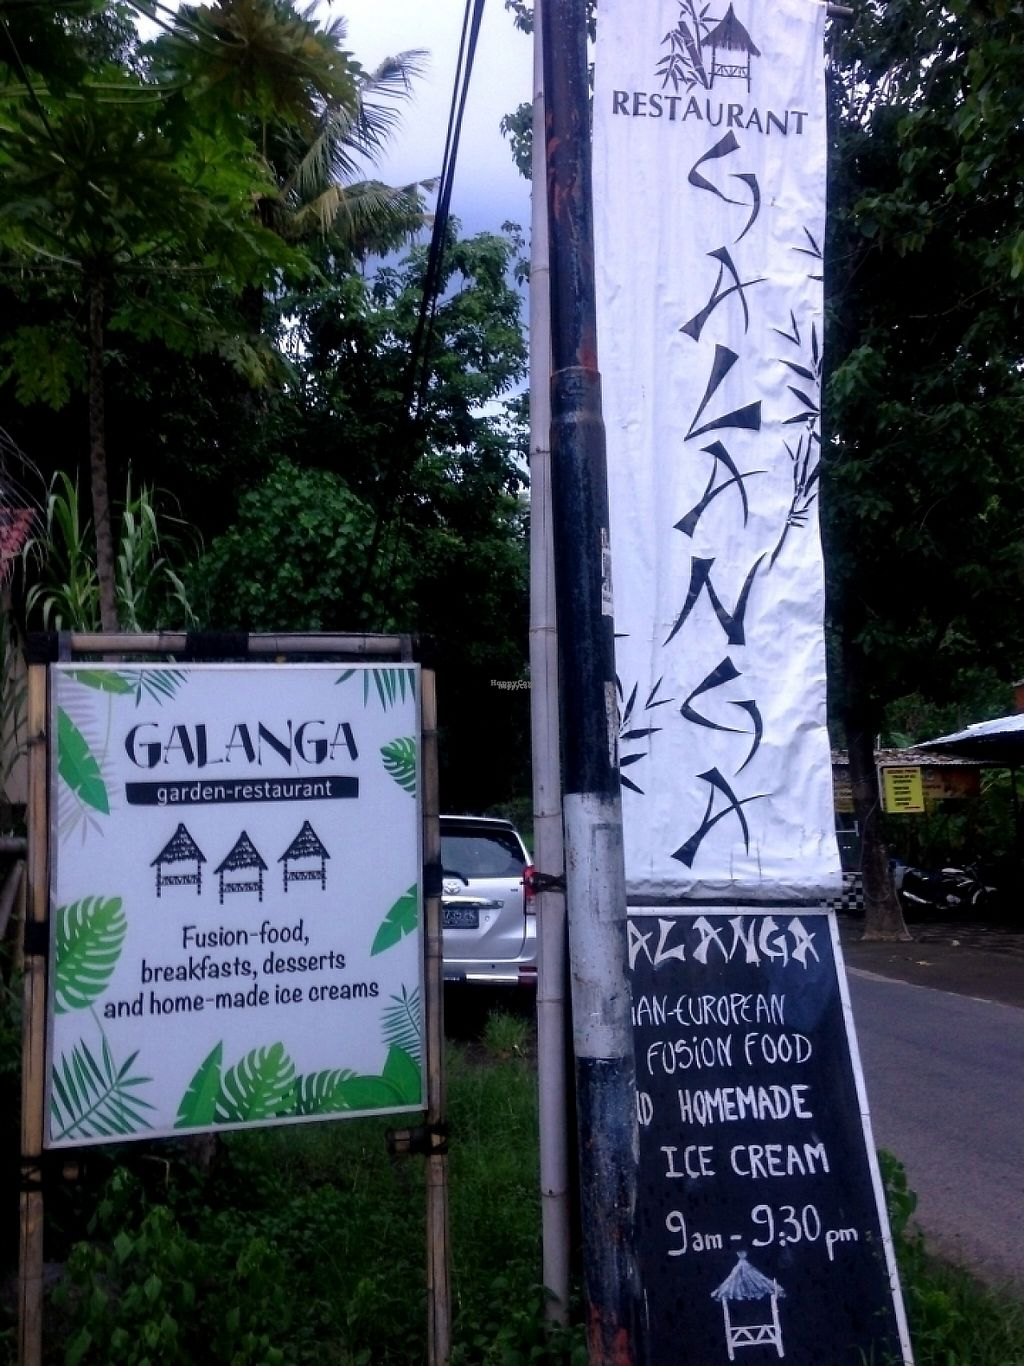 """Photo of Galanga  by <a href=""""/members/profile/becx.ray"""">becx.ray</a> <br/>Sign outside the road <br/> January 31, 2017  - <a href='/contact/abuse/image/86237/220128'>Report</a>"""